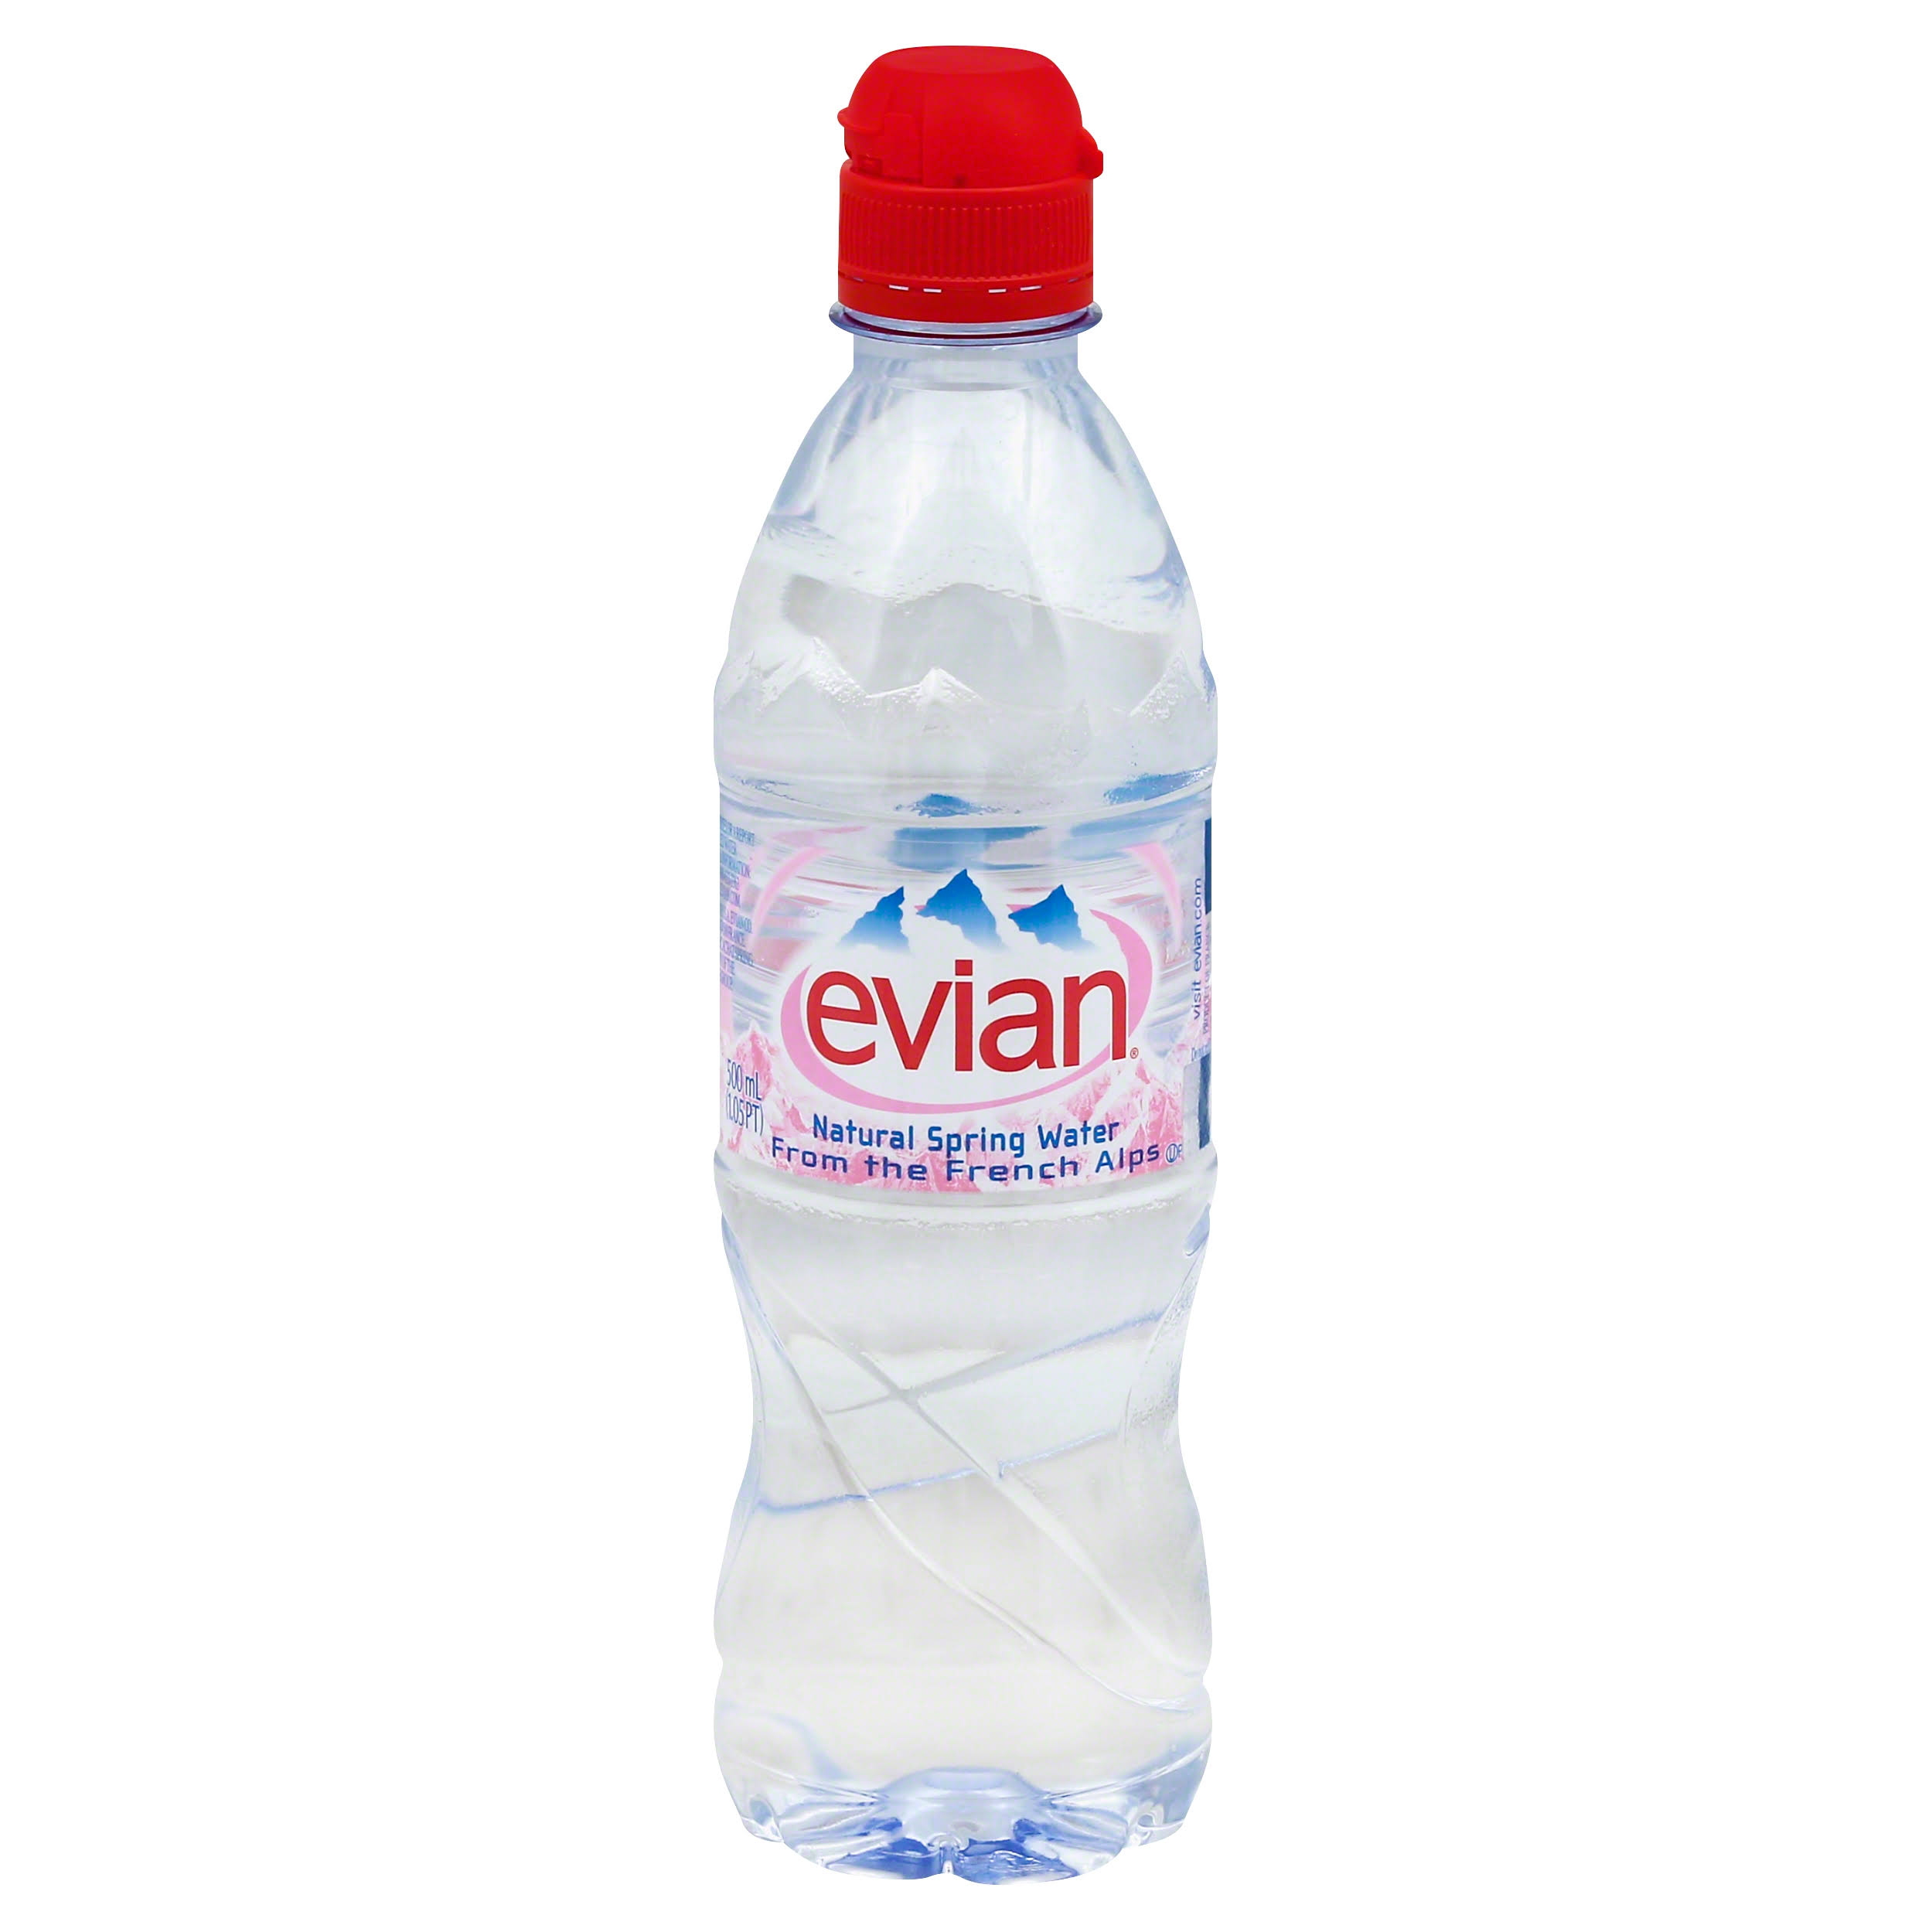 Evian Natural Spring Water - 500ml, Pack of 24